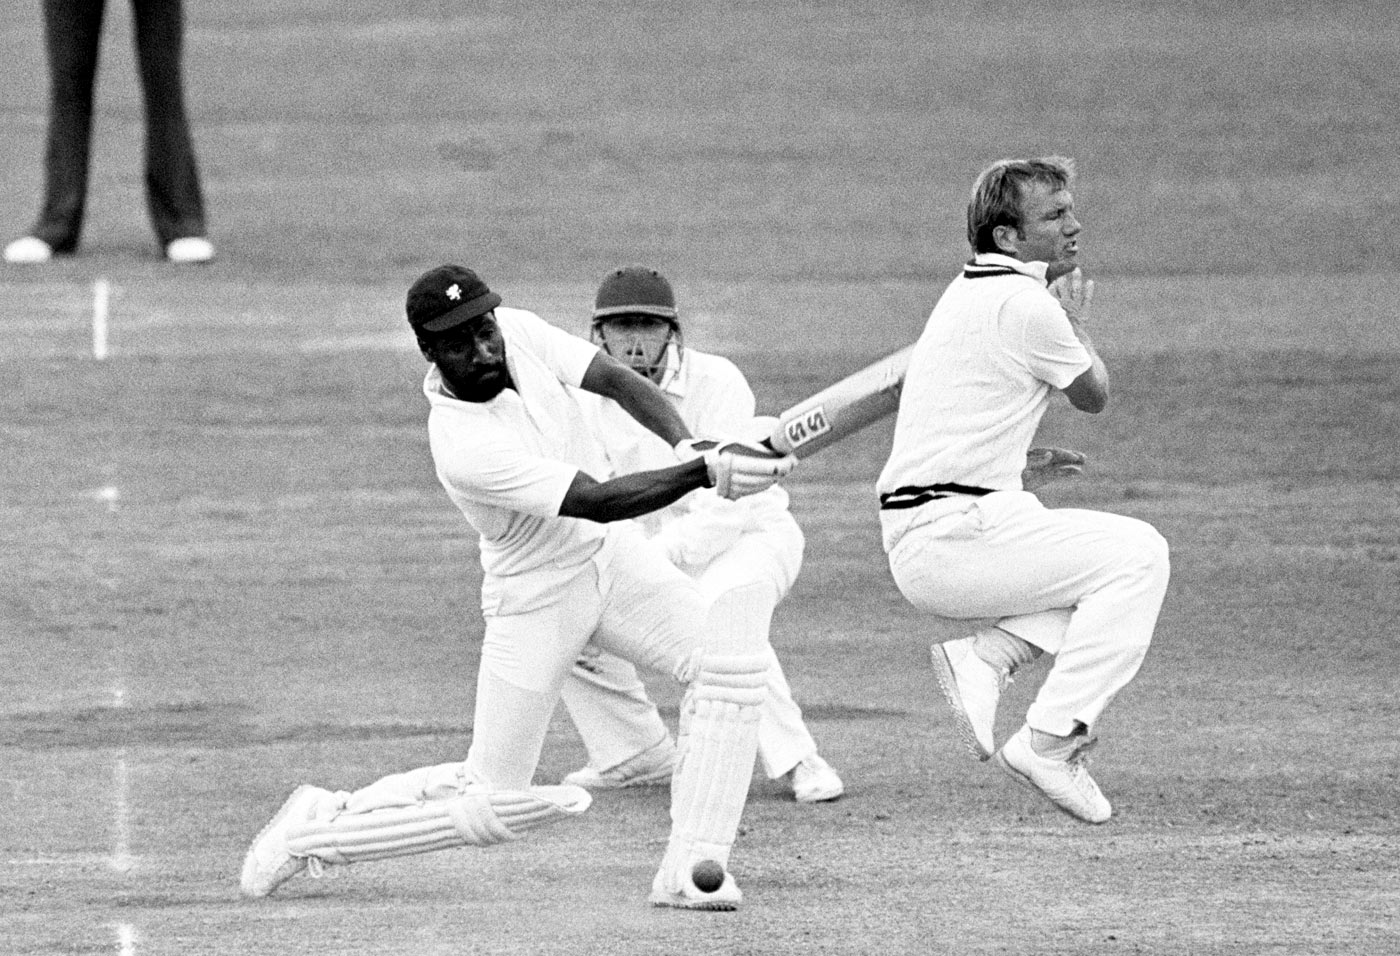 Take cover: Viv Richards on the attack was a fearsome creature